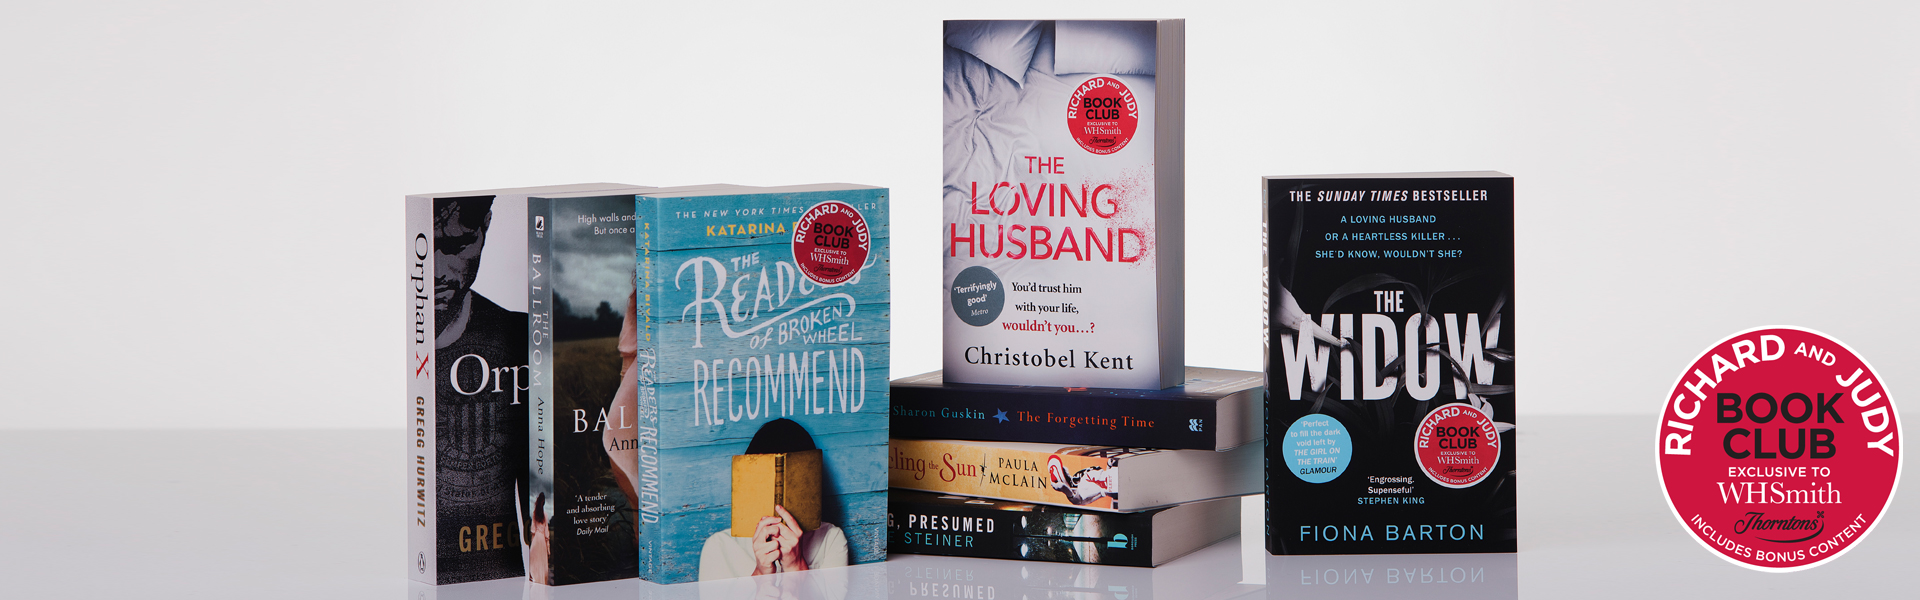 Vote Now For Your Richard and Judy Autumn Book Club 2016 WINNER!